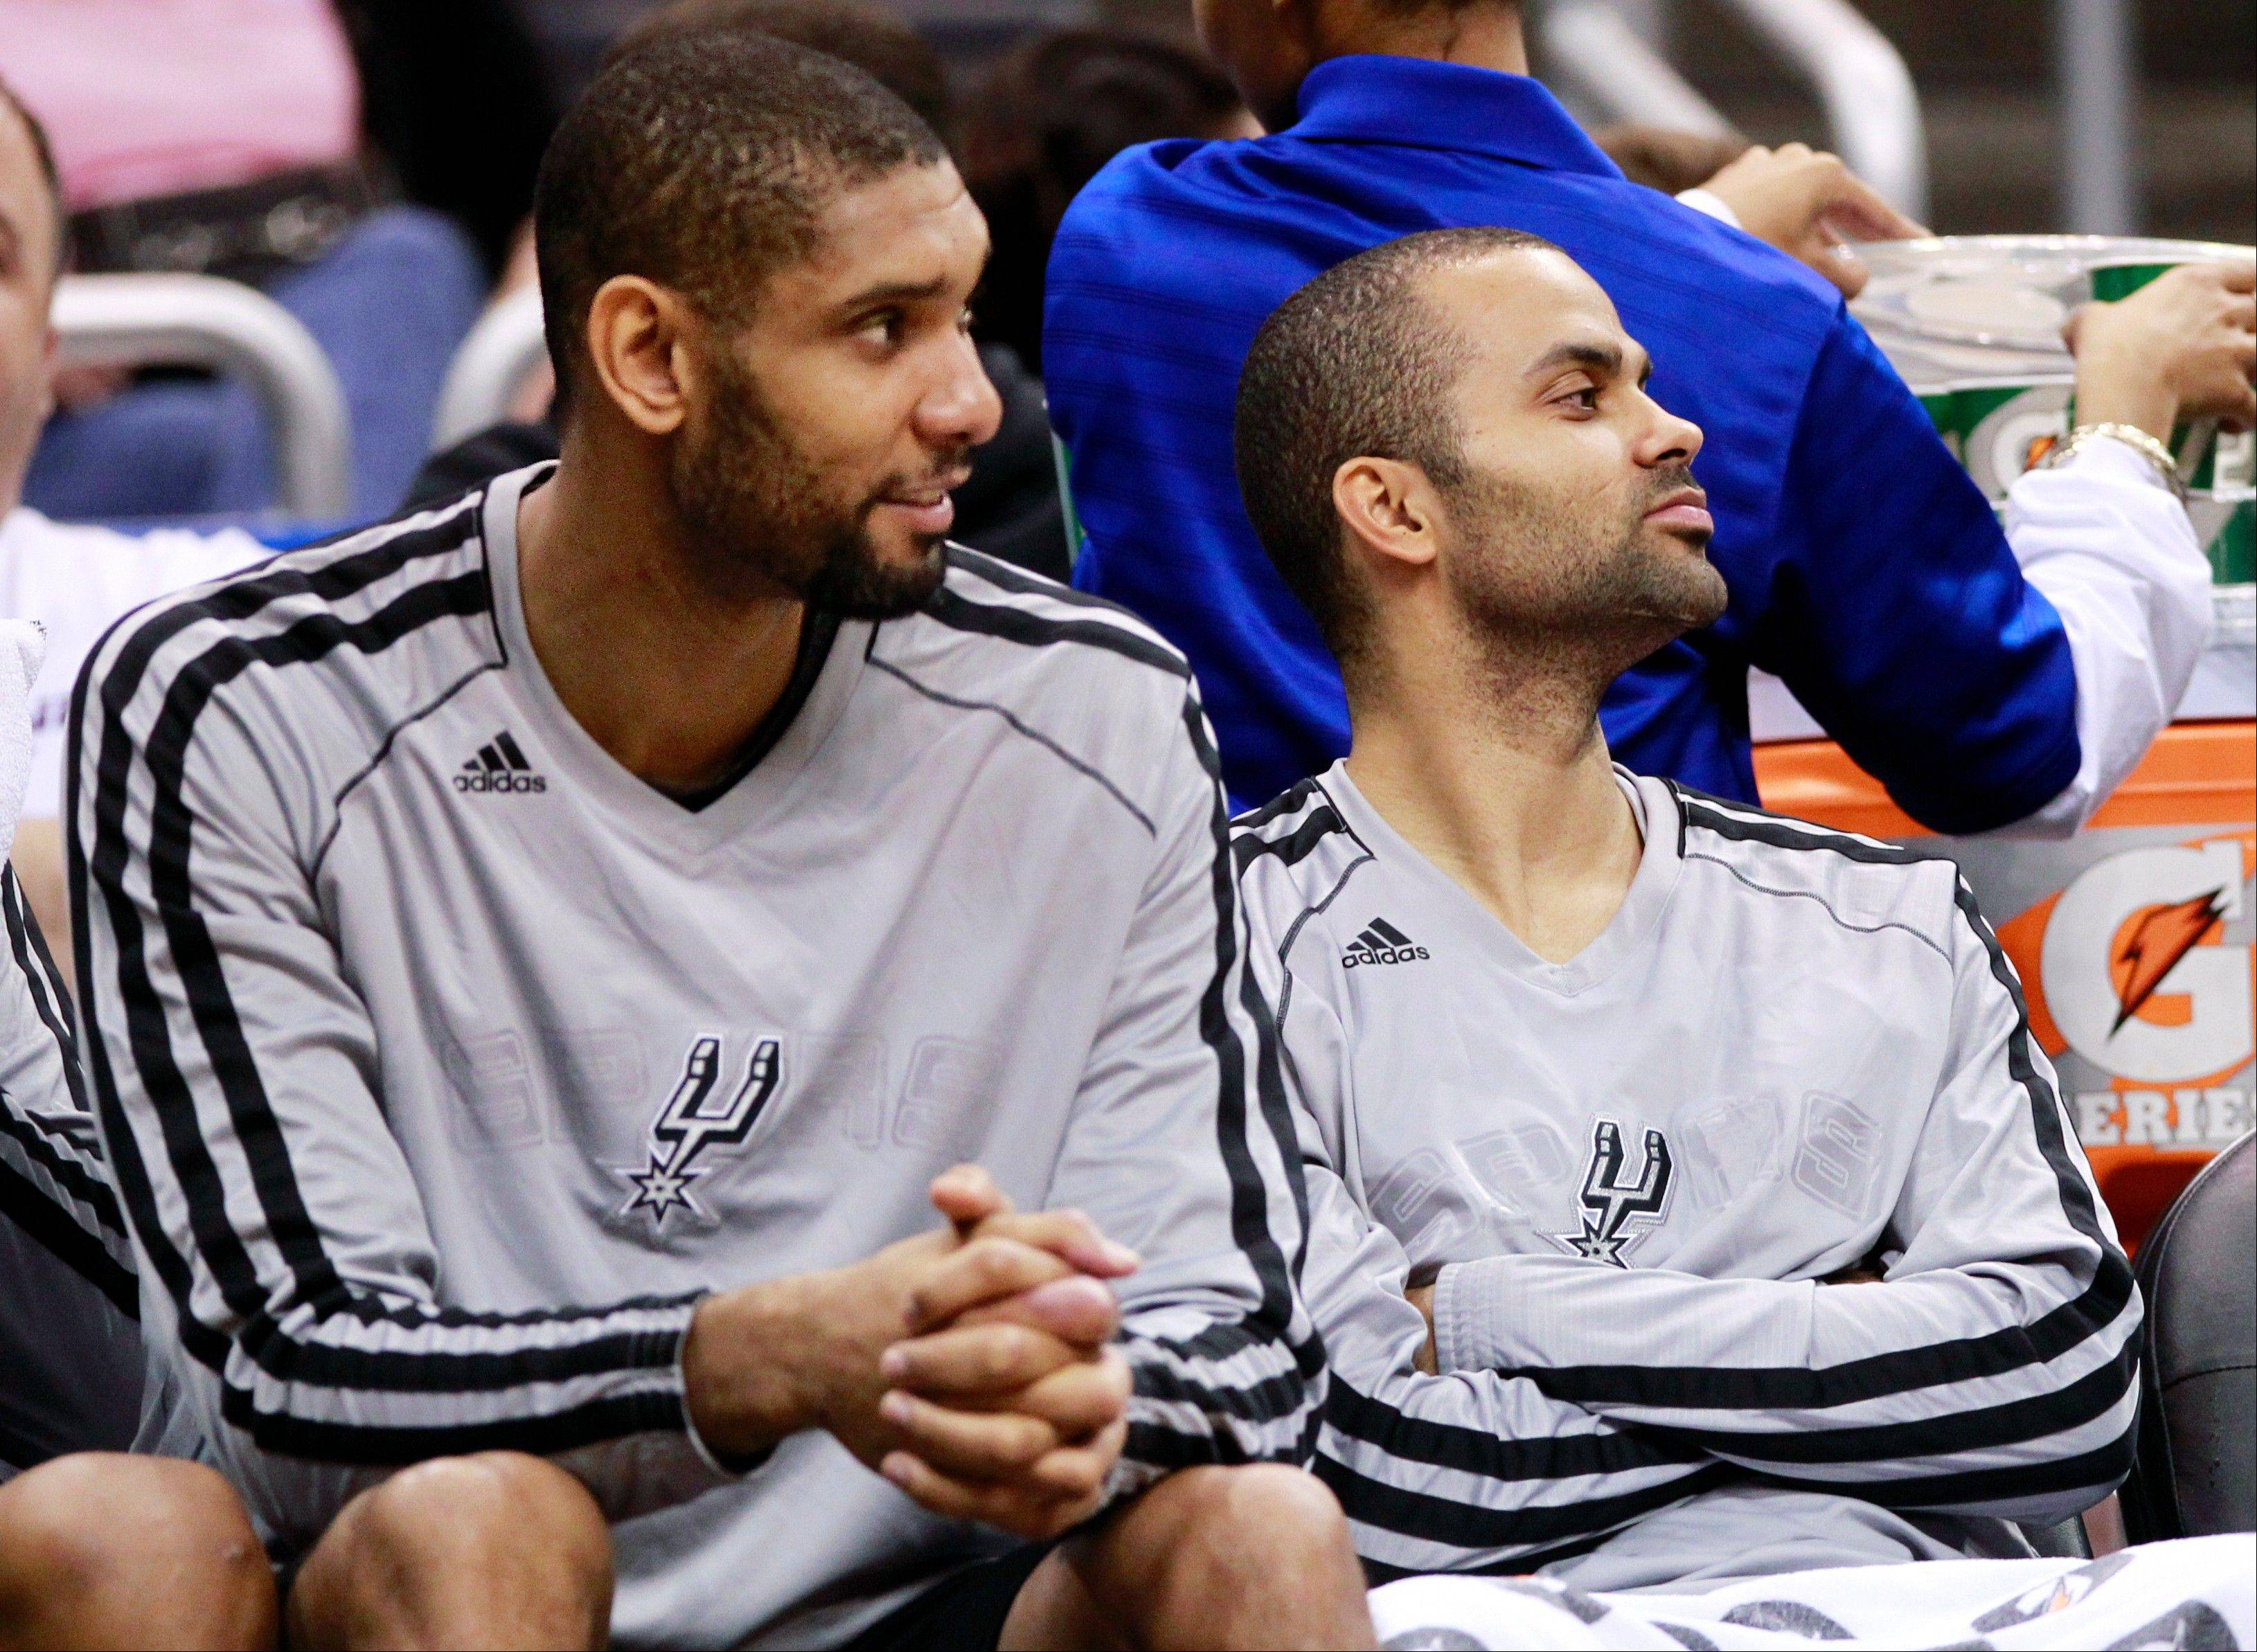 Tim Duncan, left, and Tony Parker were two of four Spurs players who did not play in San Antonio�s game against Miami on Thursday night. They were all sent back to San Antonio by coach Gregg Popovich, who said the move was in his team�s best interest. NBA Commissioner David Stern called the decision �unacceptable,� apologizing to fans.